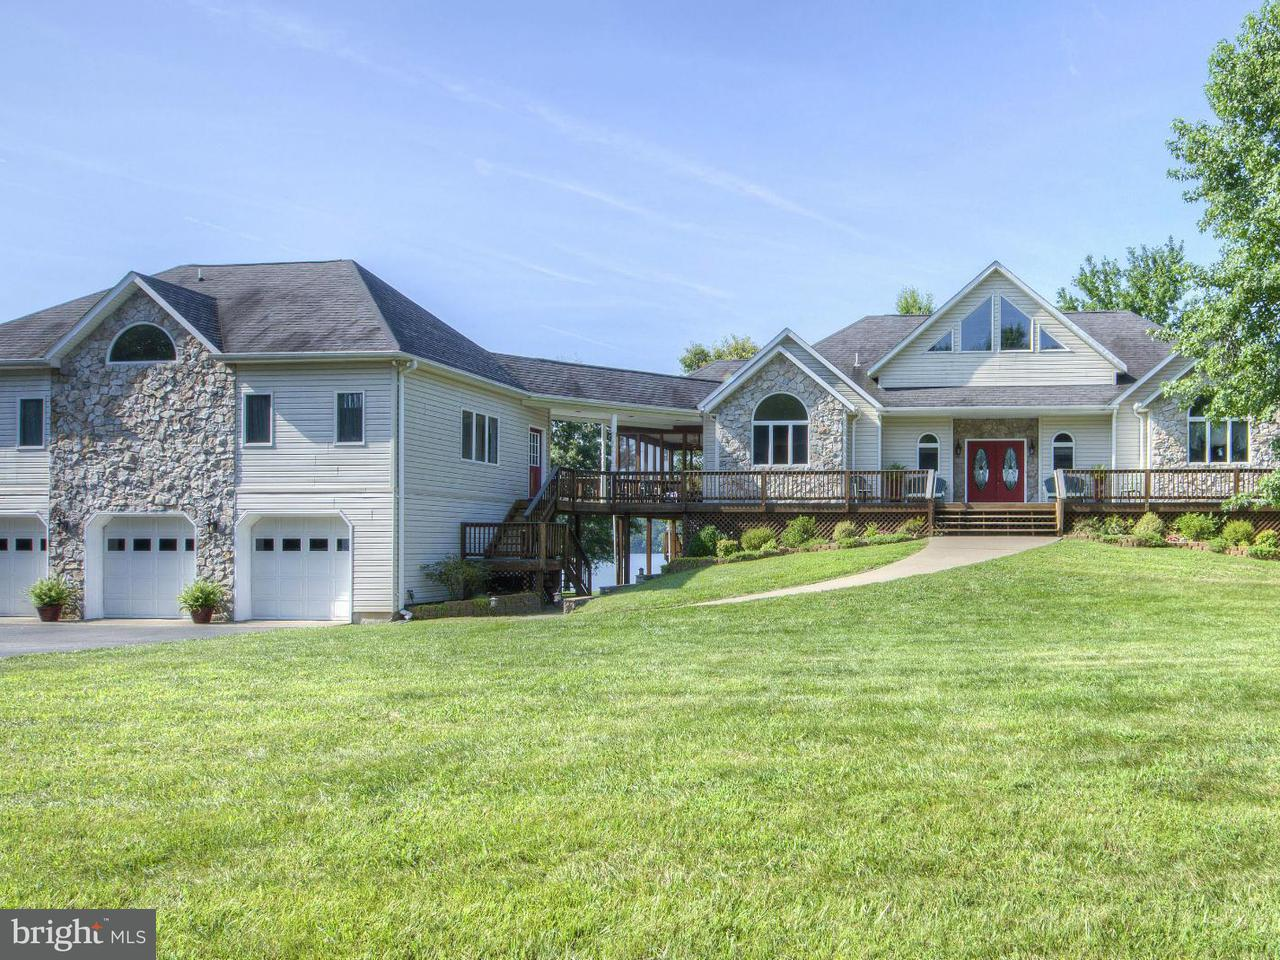 Single Family Home for Sale at 9675 KENTUCKY SPRINGS Road 9675 KENTUCKY SPRINGS Road Mineral, Virginia 23117 United States